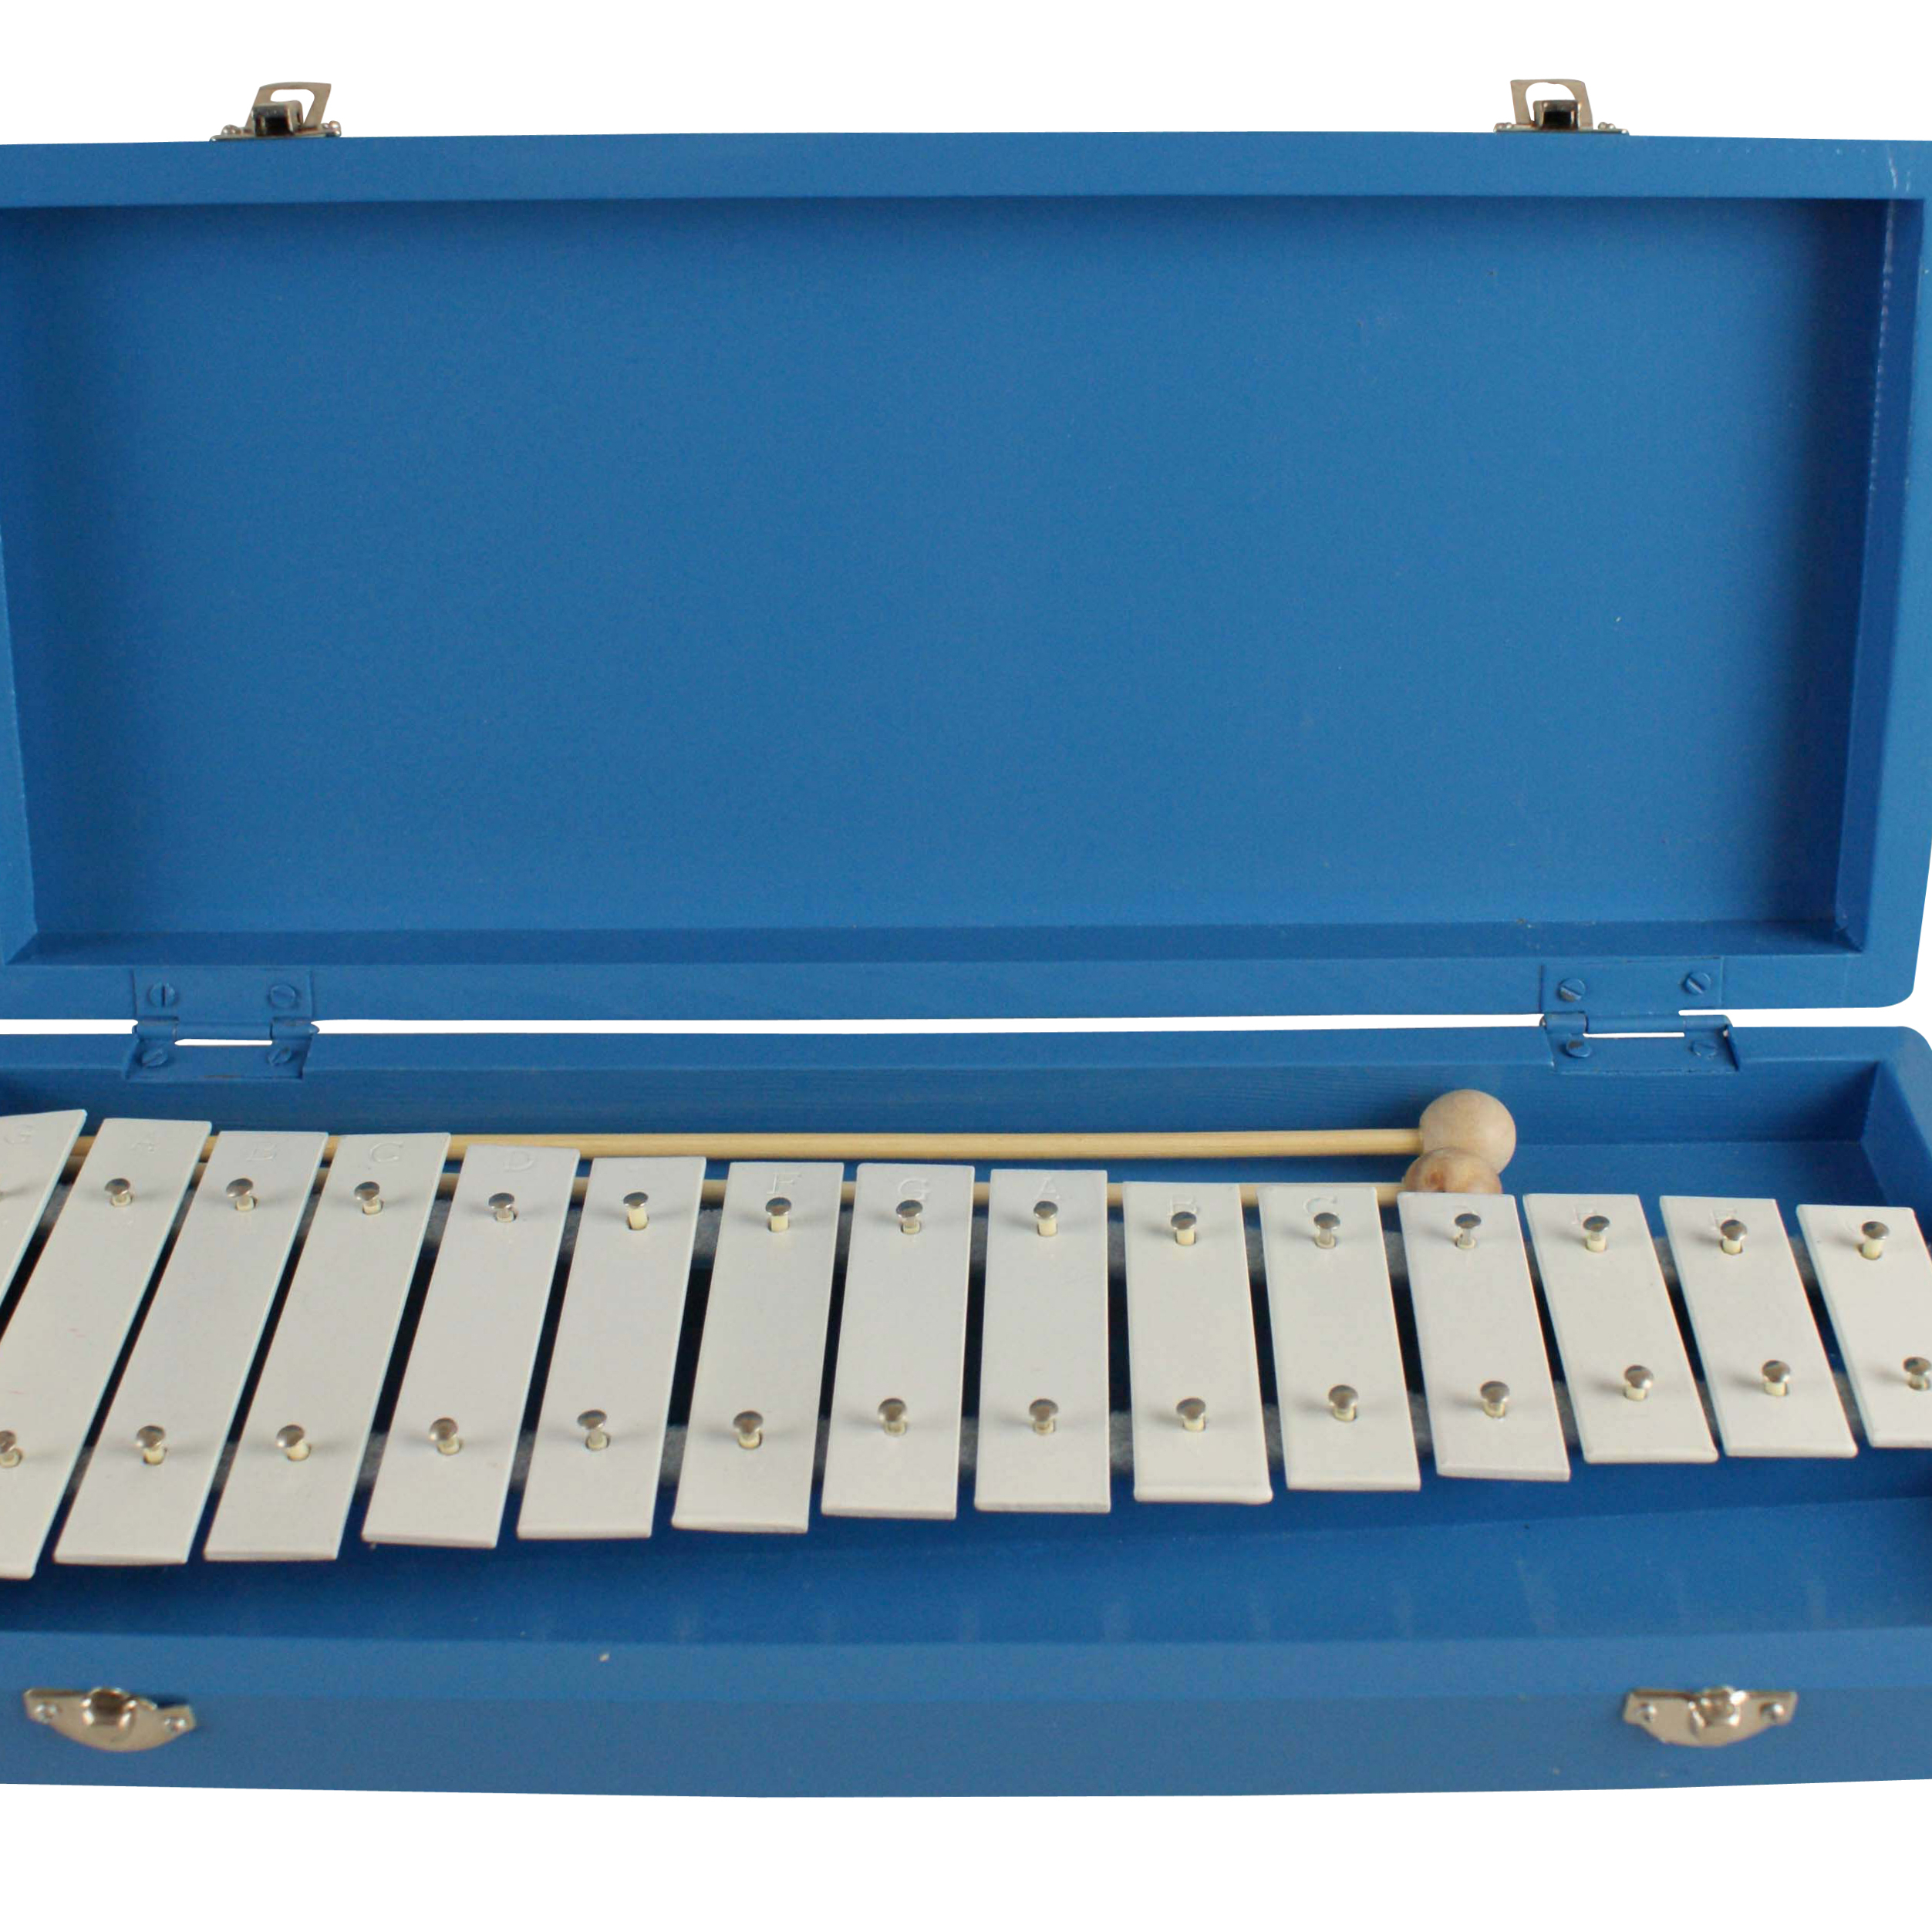 1 Set 8 Tones Xylophone Glockenspiel DIY Sound Brick Rhythm Toys for Children Music Enlightenment Toys